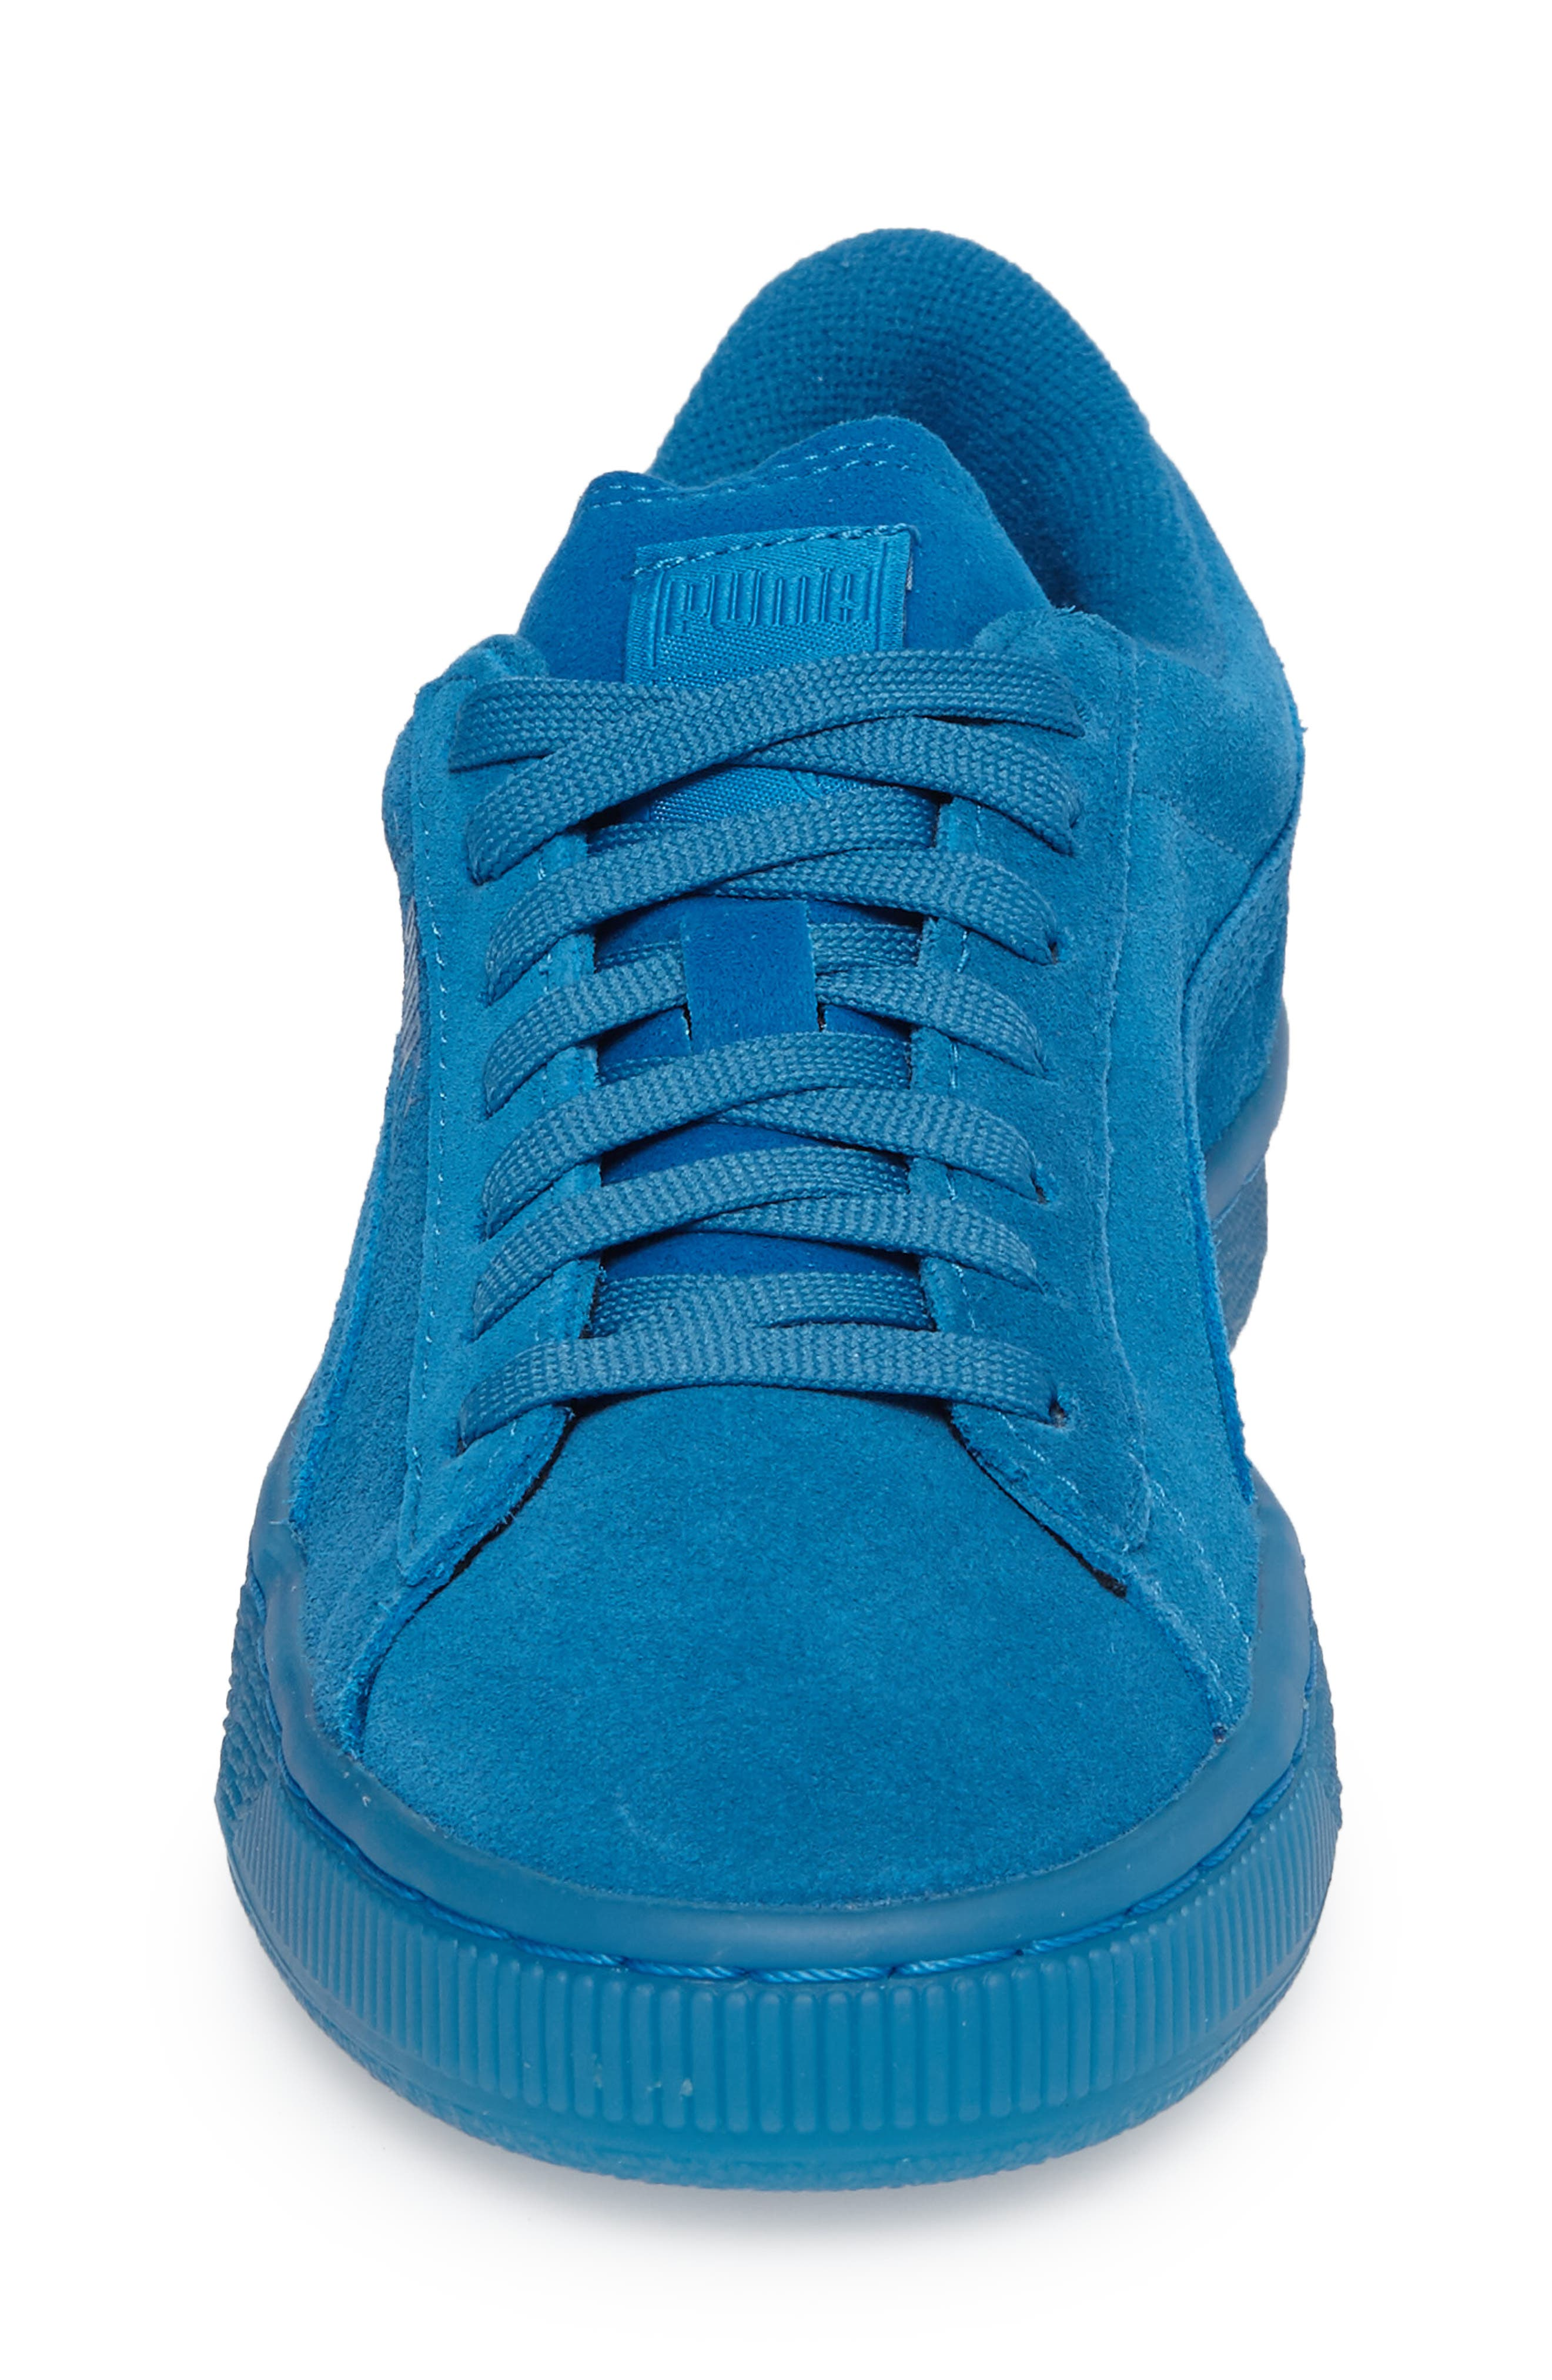 'Suede Iced' Sneaker,                             Alternate thumbnail 4, color,                             460